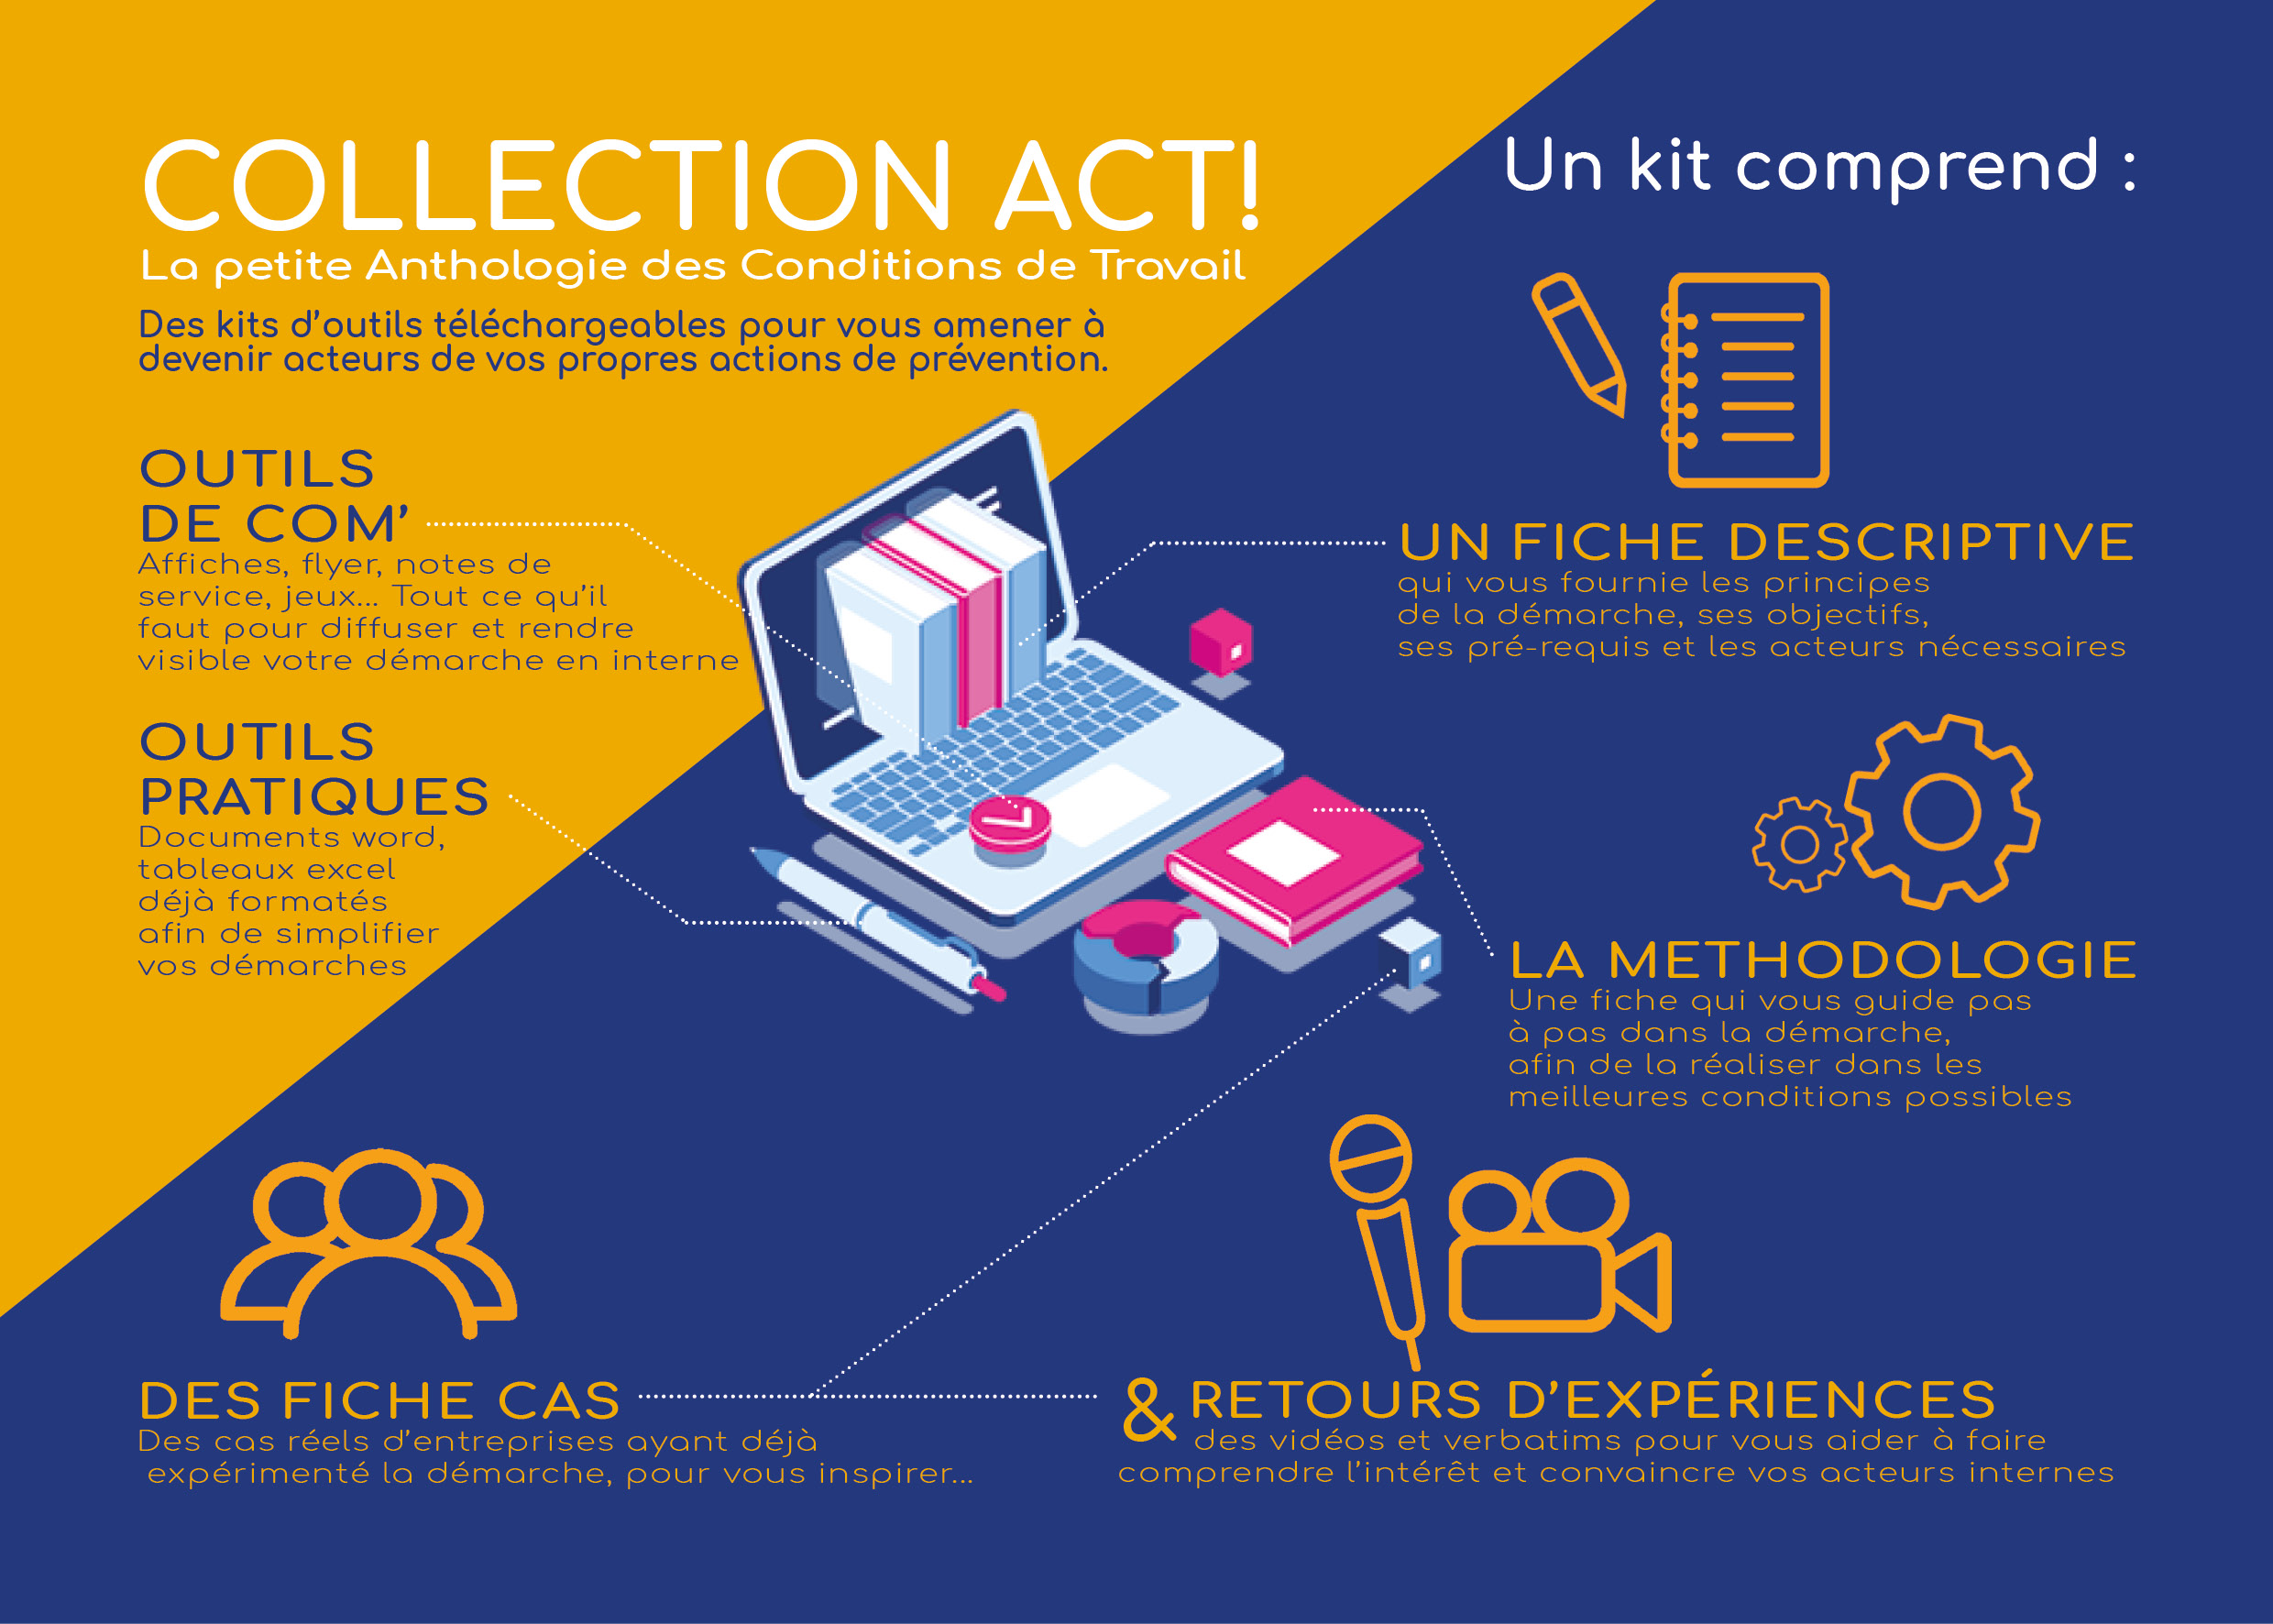 collection Act!